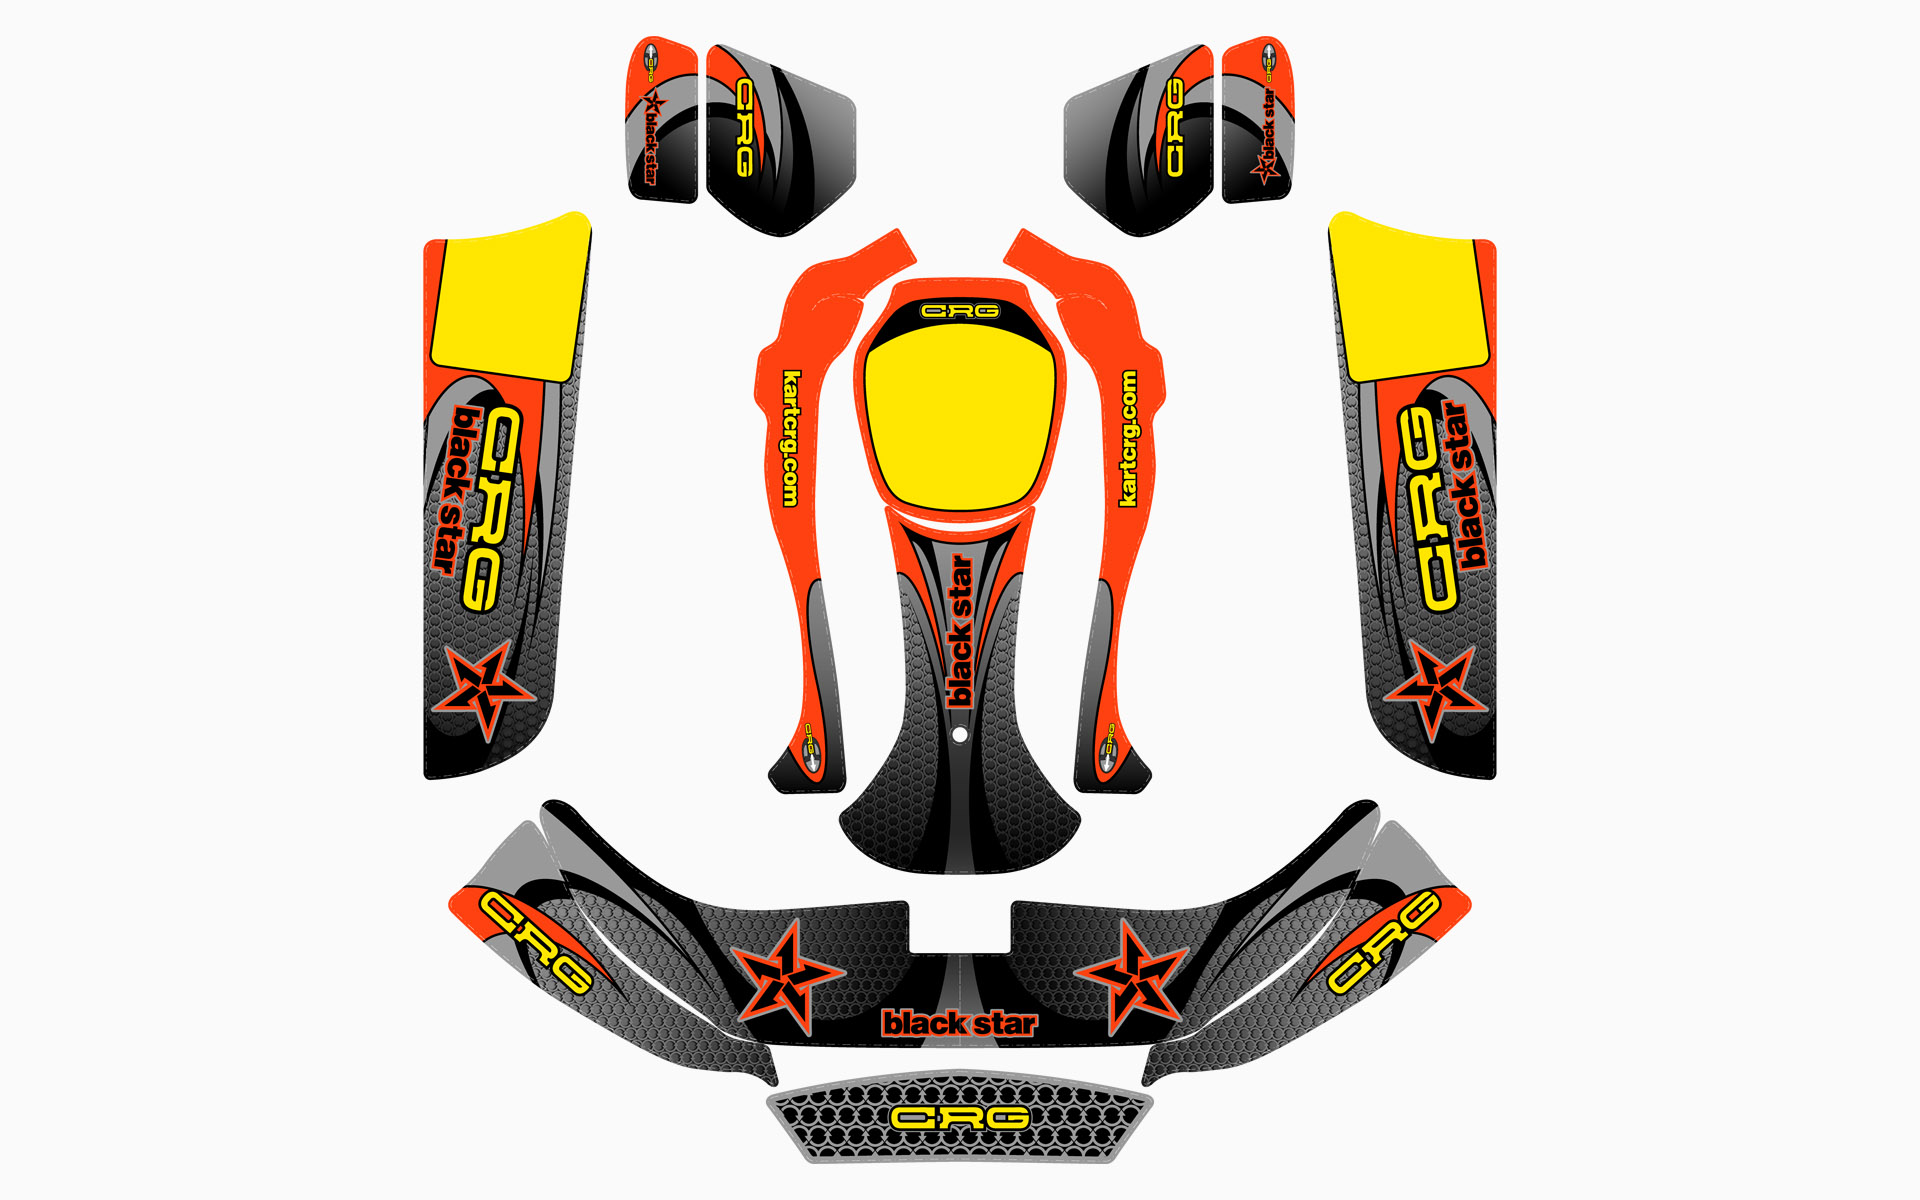 CRG Blackstar Factory Kart Livery Decal Kit